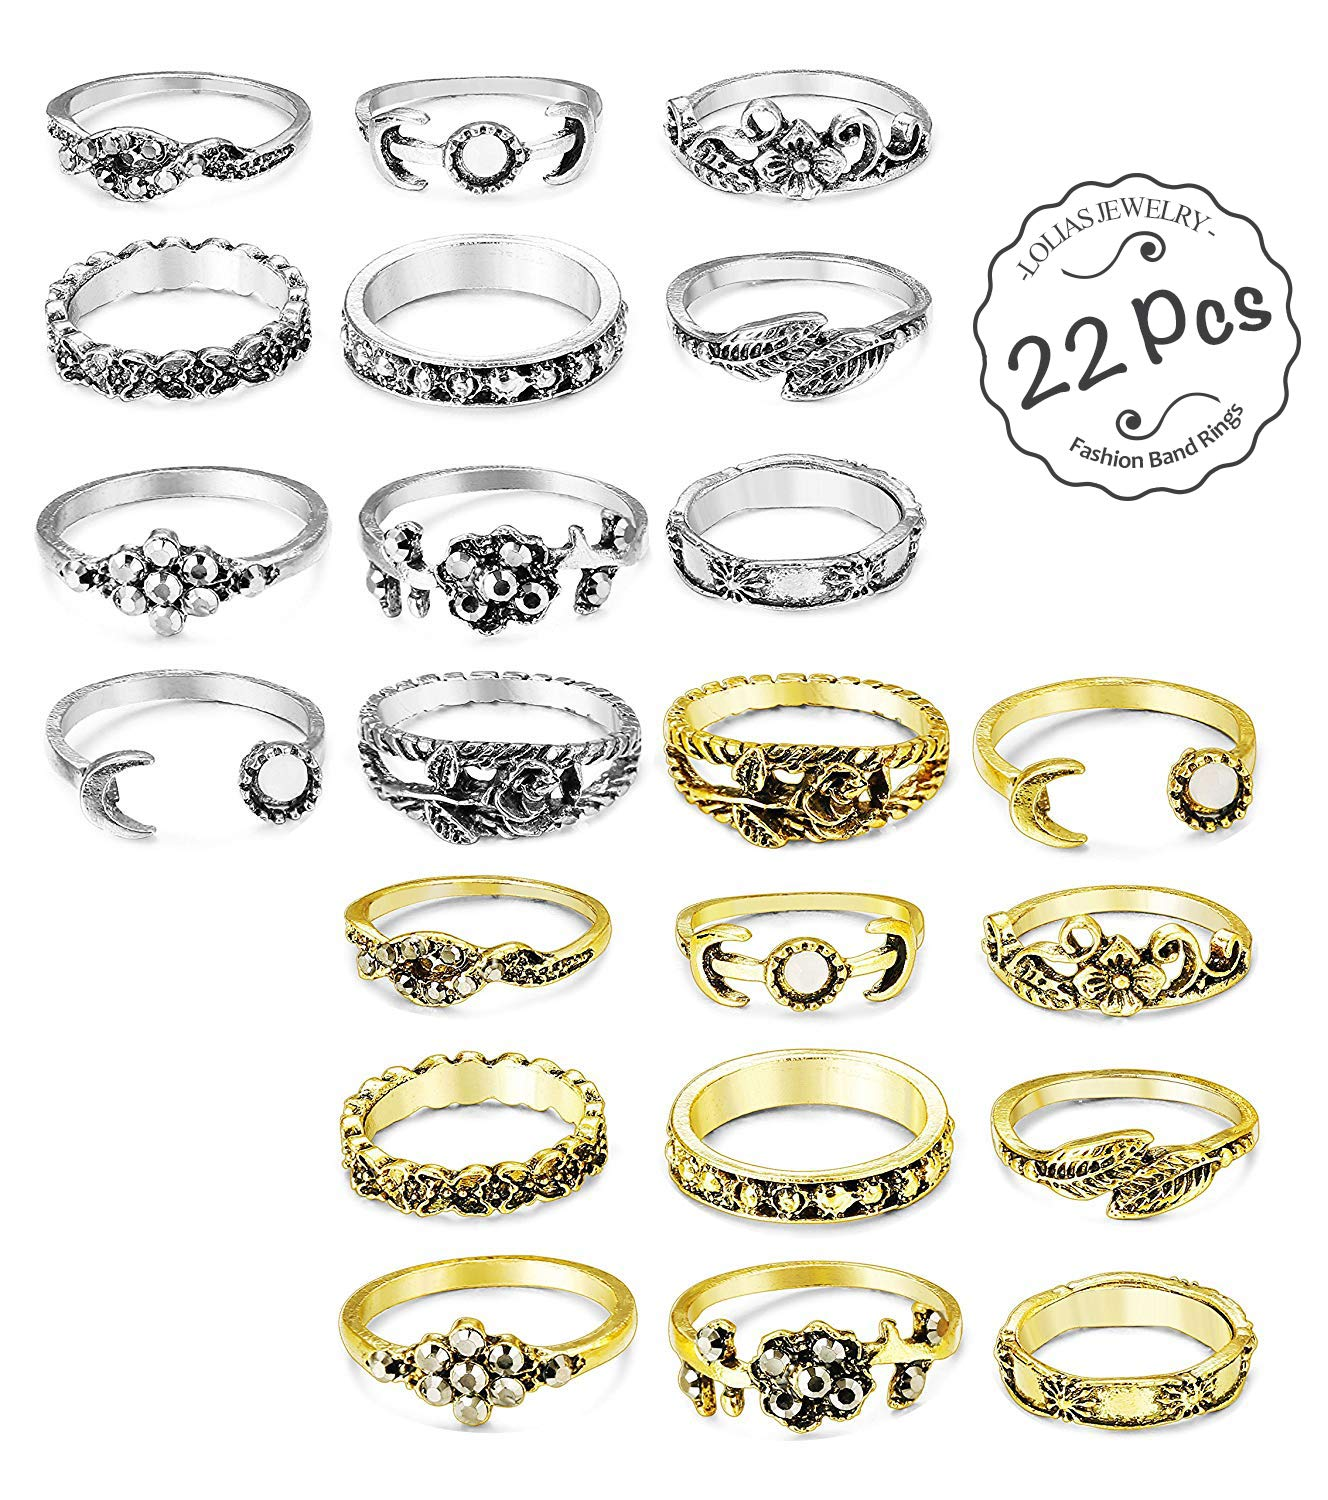 LOLIAS 20 Pcs Vintage Knuckle Ring Set for Women Girls Stackable Rings Set Hollow Carved Flowers L-JBZKR